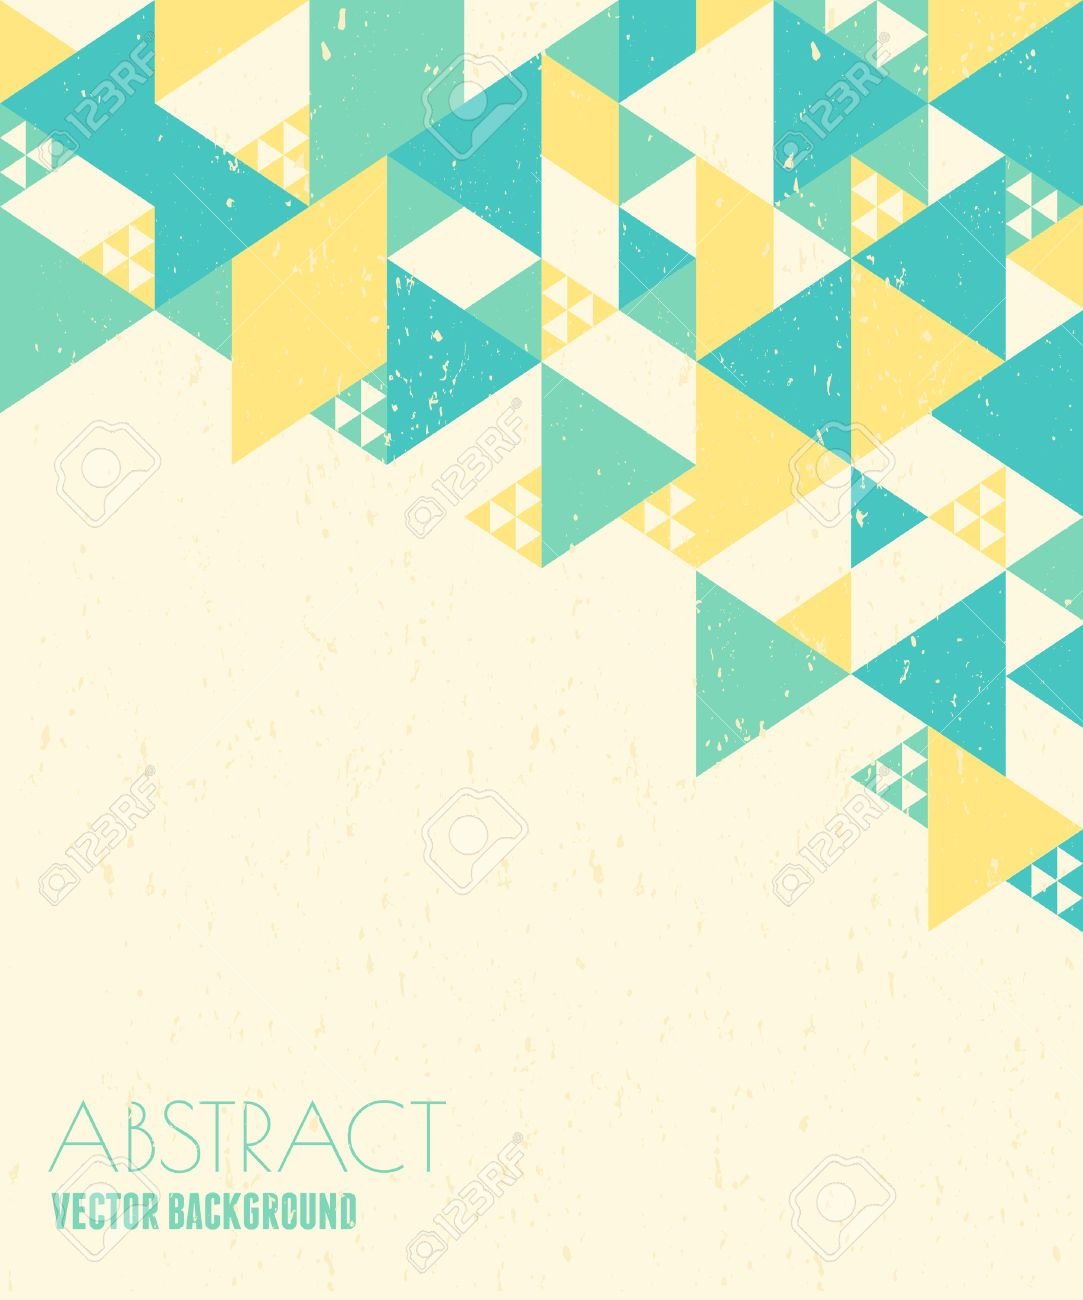 Pin by Taylor O'Donnell on CIA World Factbook | Geometric background